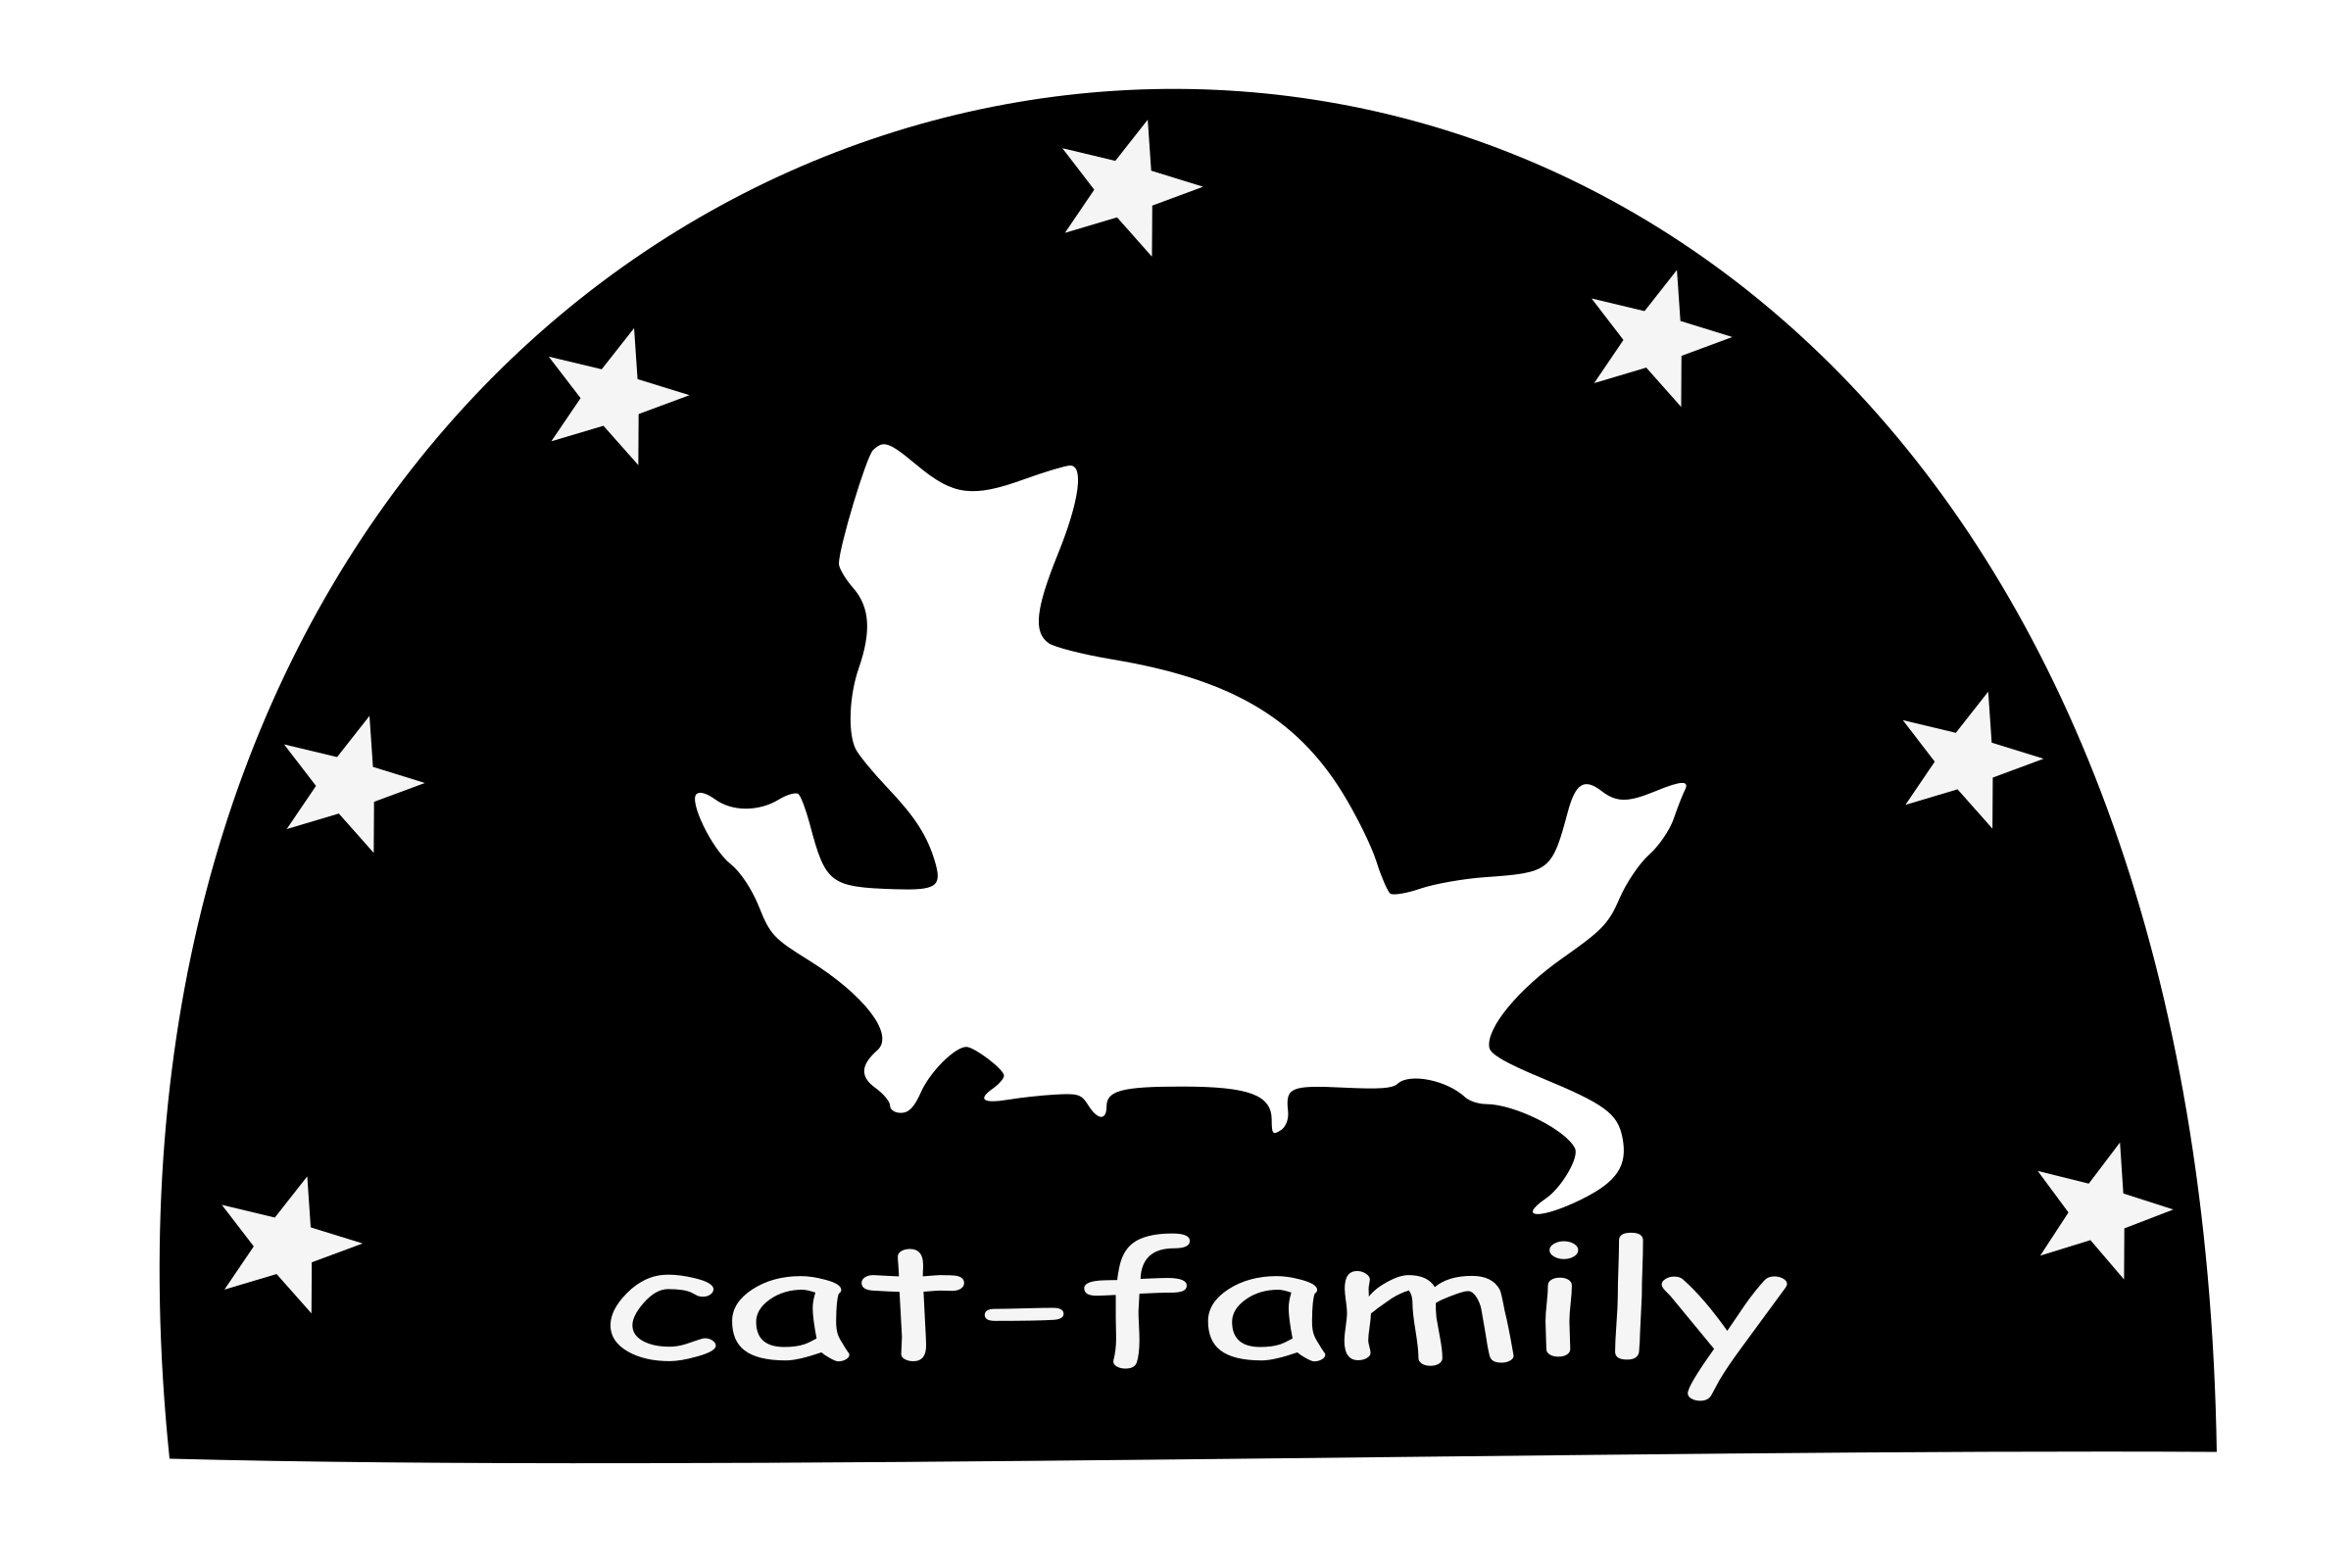 Cat-family-silhouette by yamachem